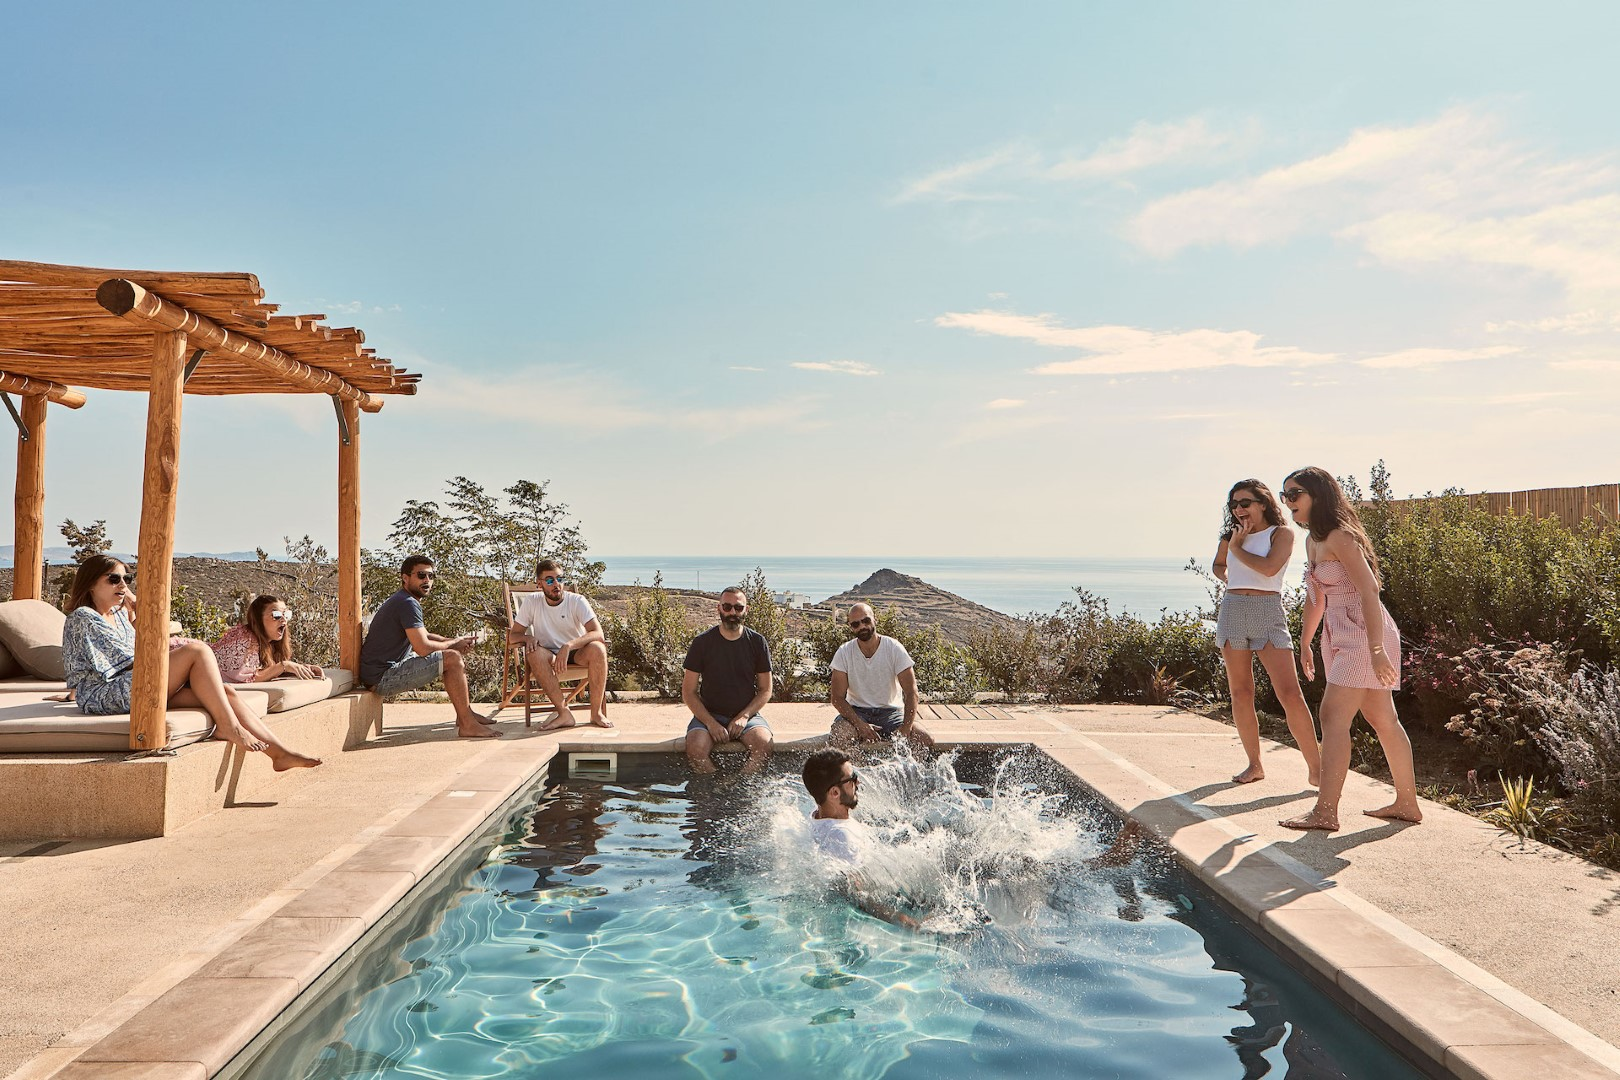 Beach Resorts & Hotels for Summer Holidays rocked by the new TBI team in a global campaign